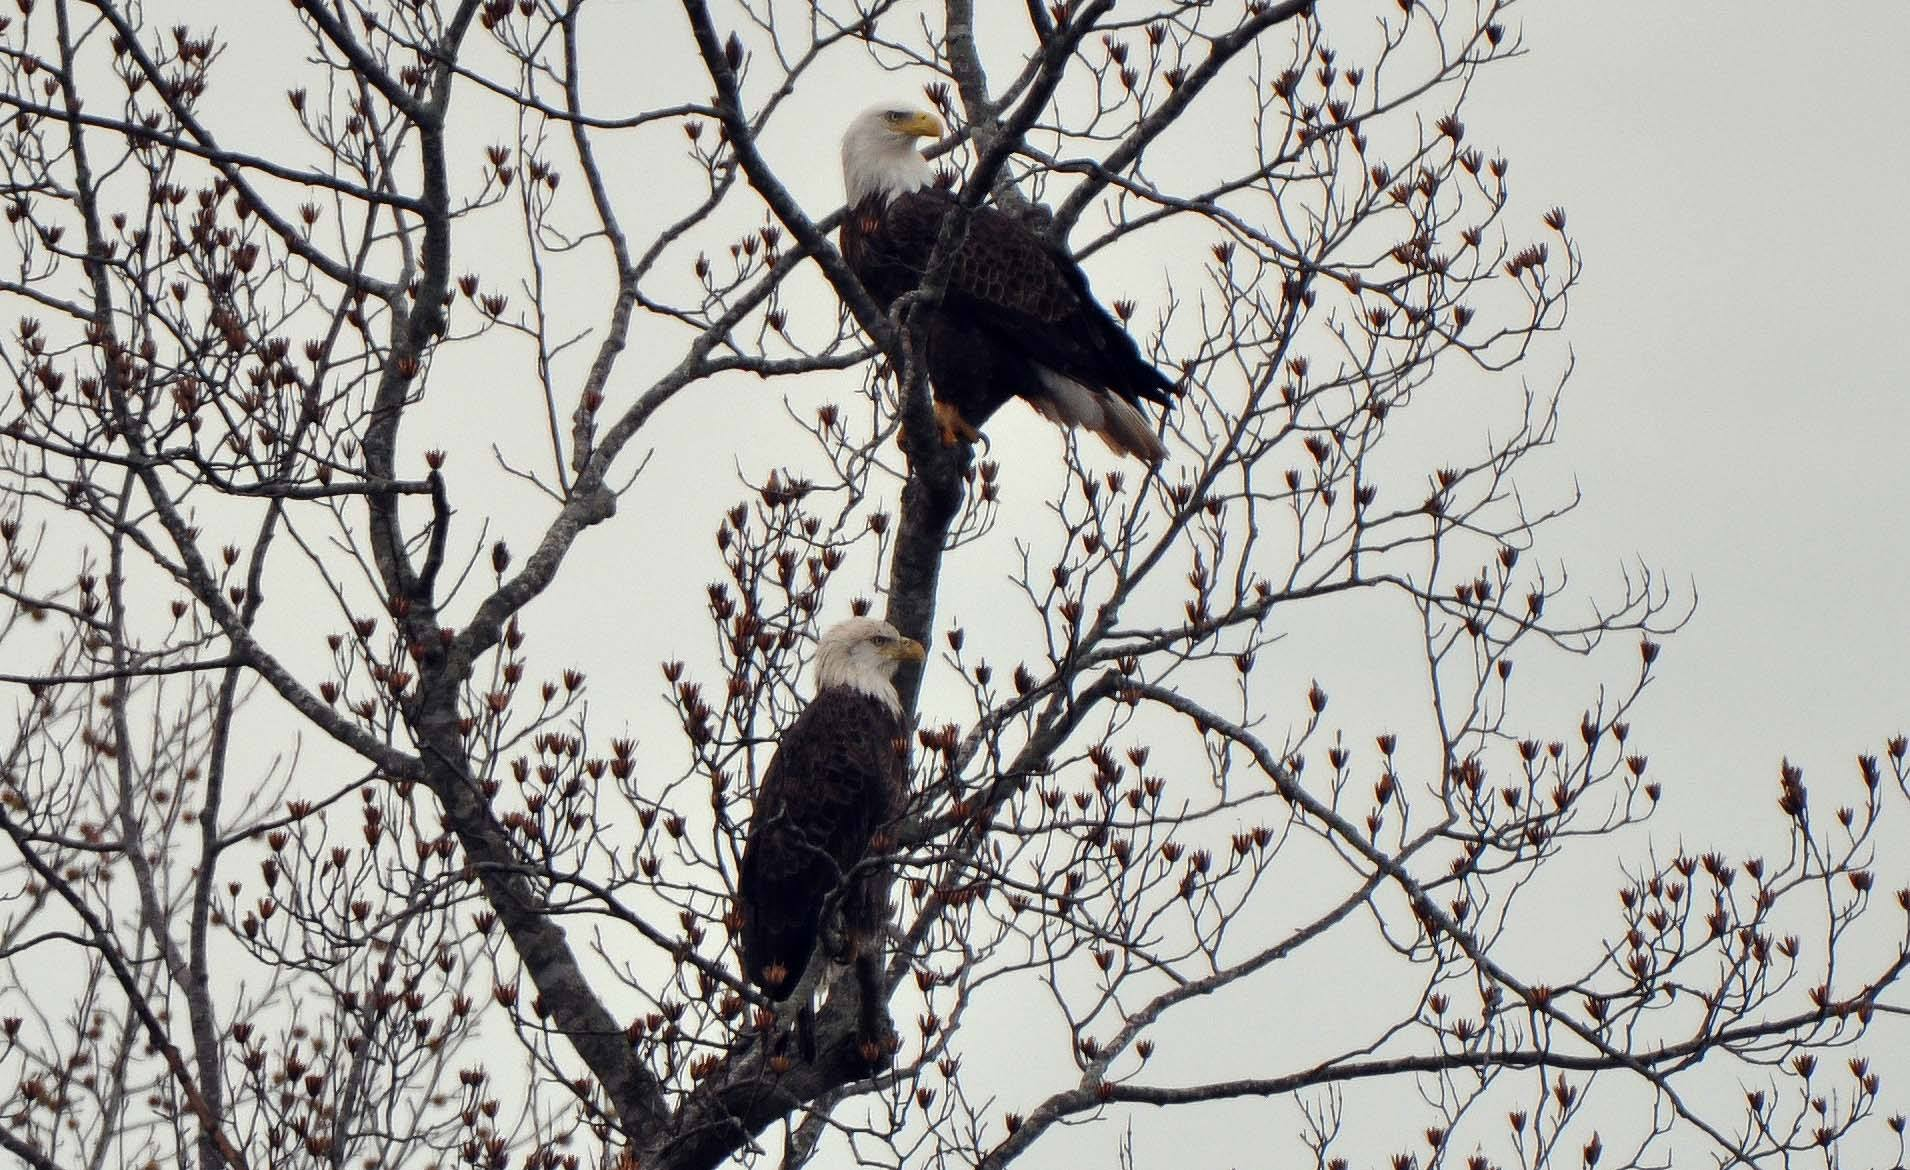 Pair of eagles on Chipmans Pond in Laurel, DE